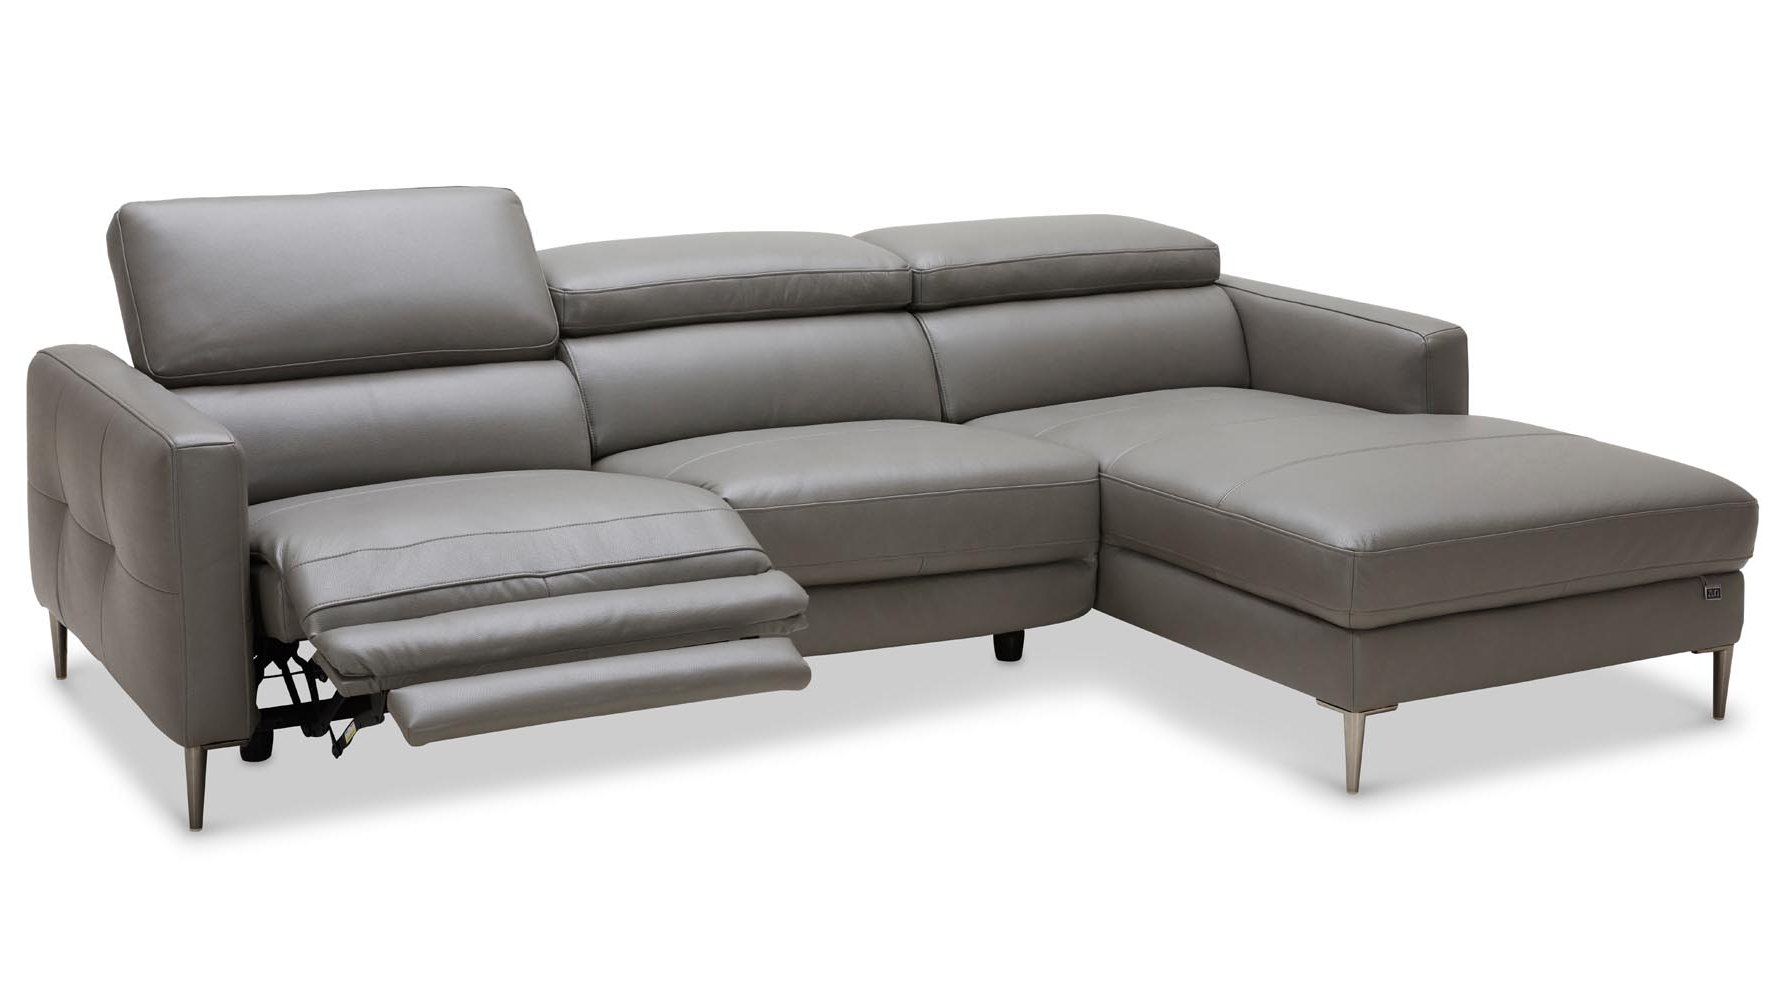 2019 Aspen 2 Piece Sectionals With Raf Chaise Intended For Products In Recliners (View 1 of 20)